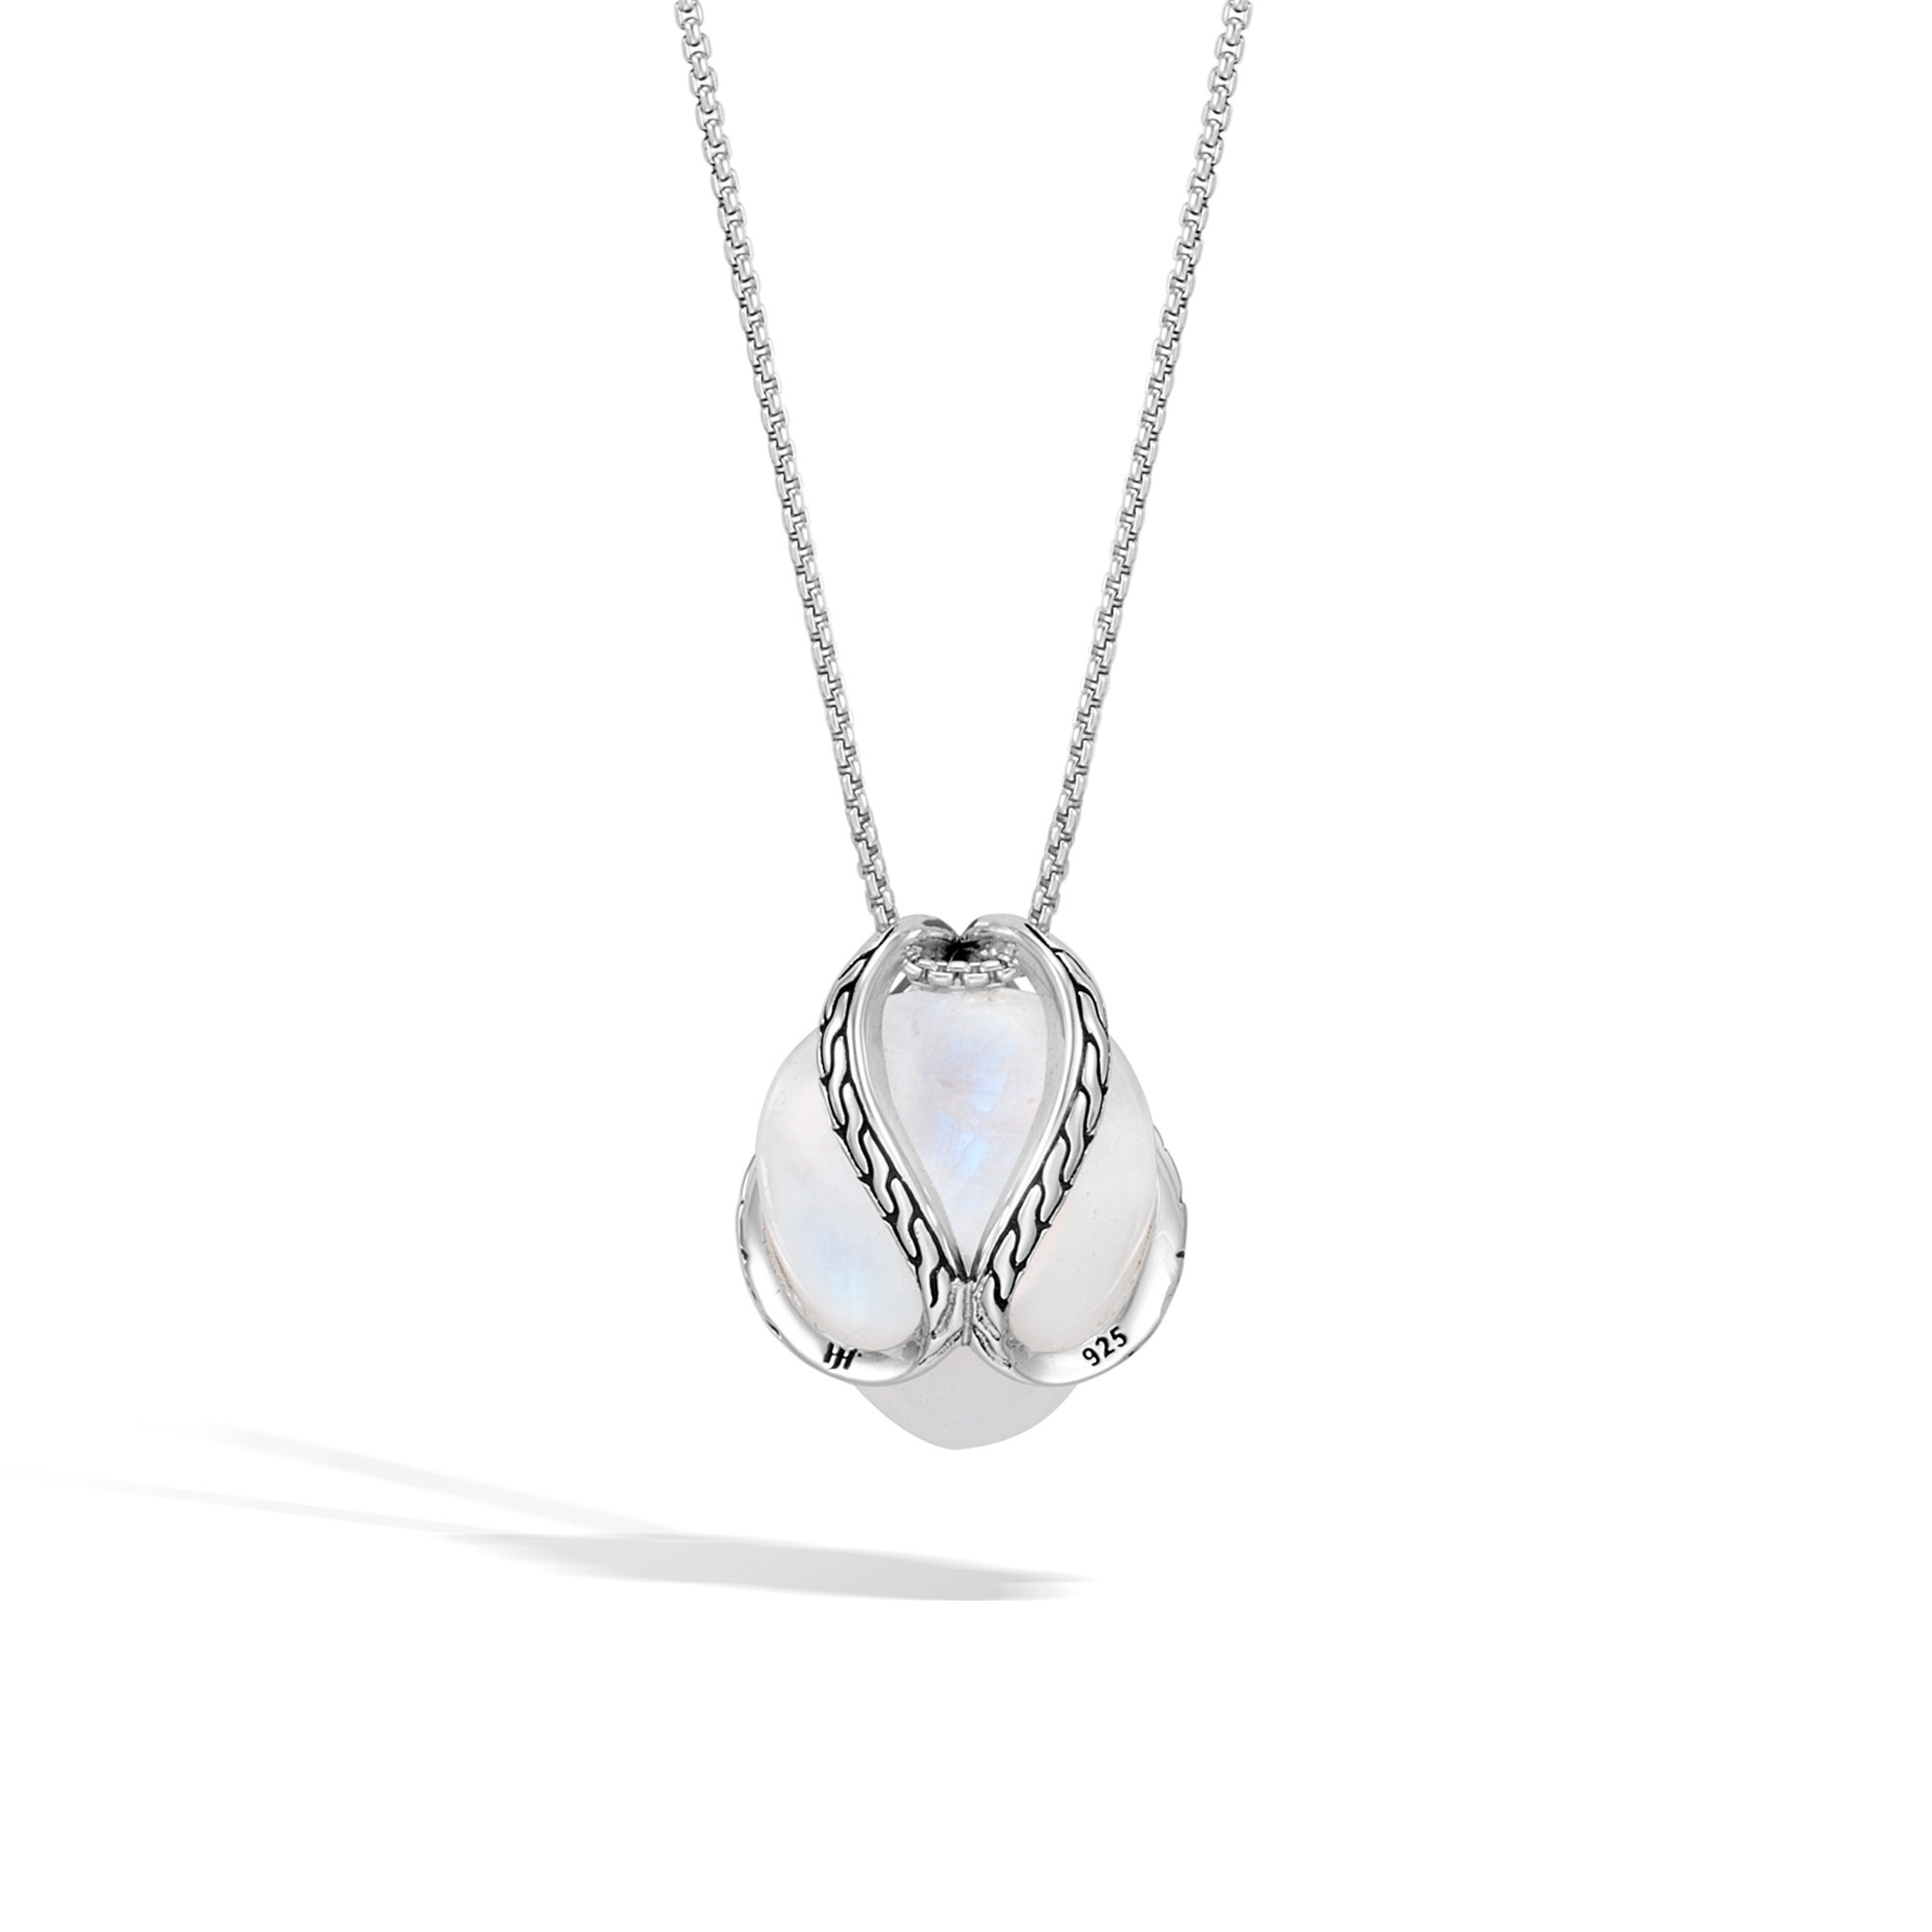 Classic Chain Pendant Necklace In Silver with 17MM Gemstone, Milky Rainbow Moonstone, large